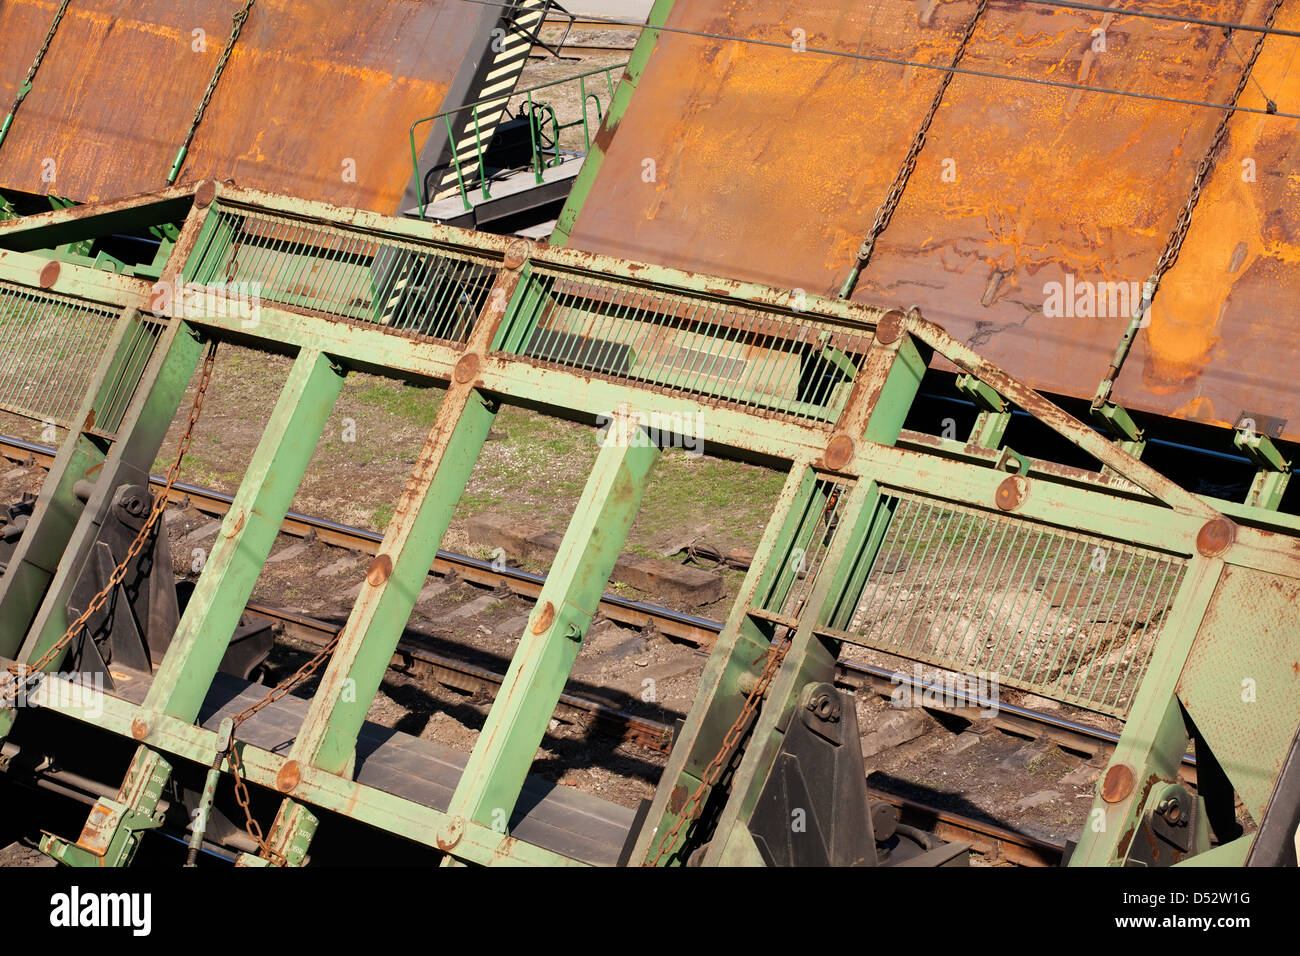 railway carriage transport special plates - Stock Image